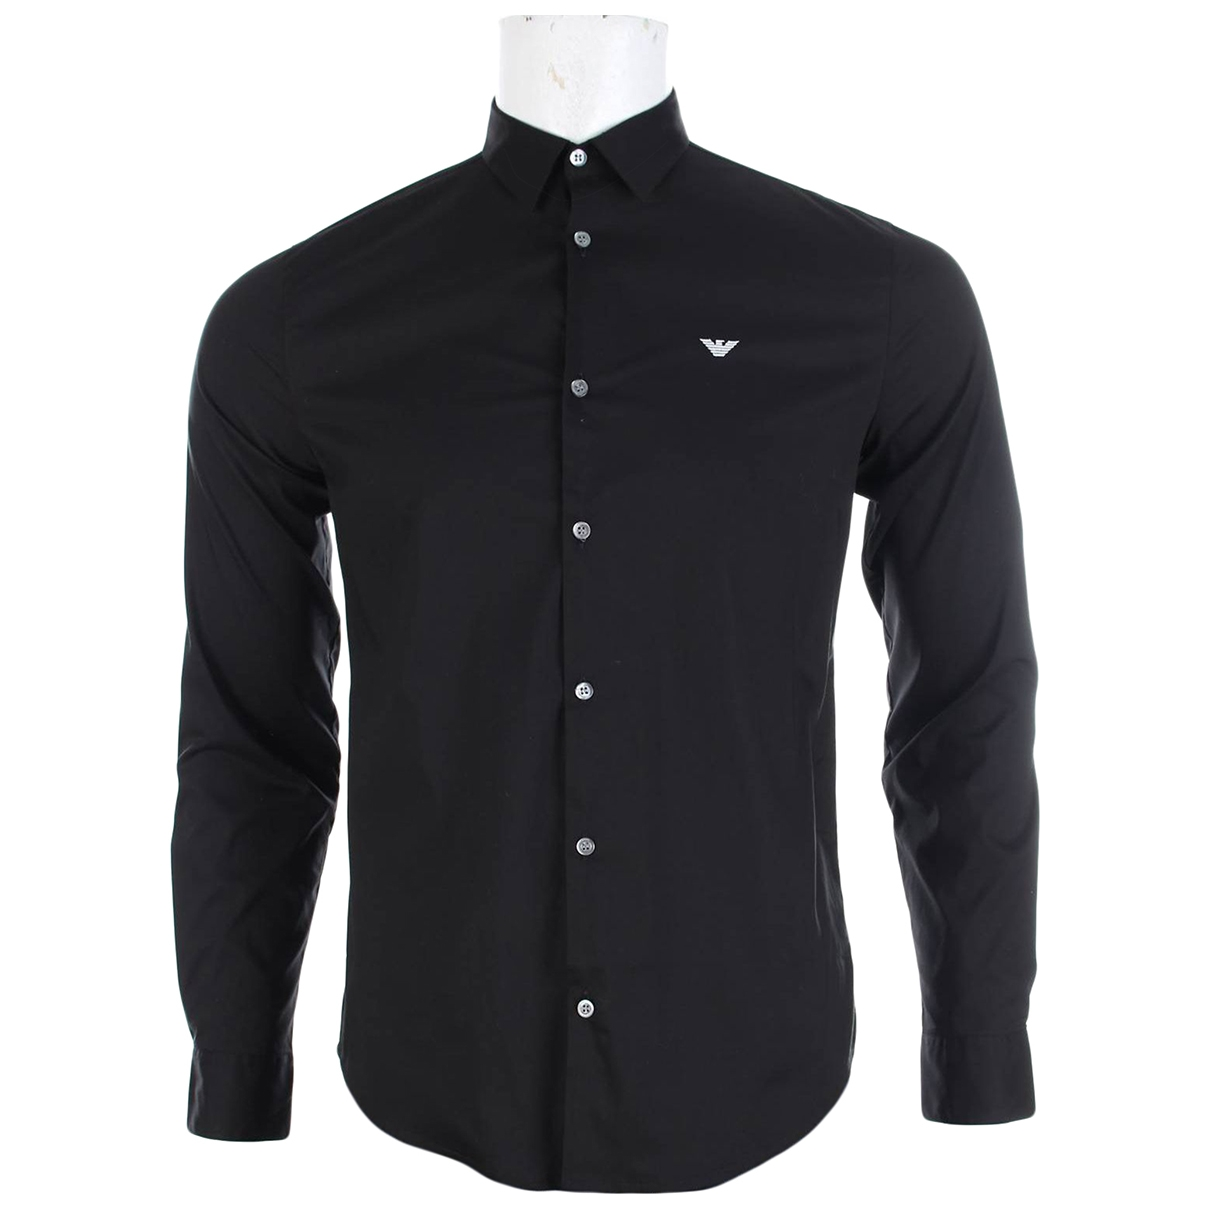 Emporio Armani \N Black Cotton Shirts for Men M International